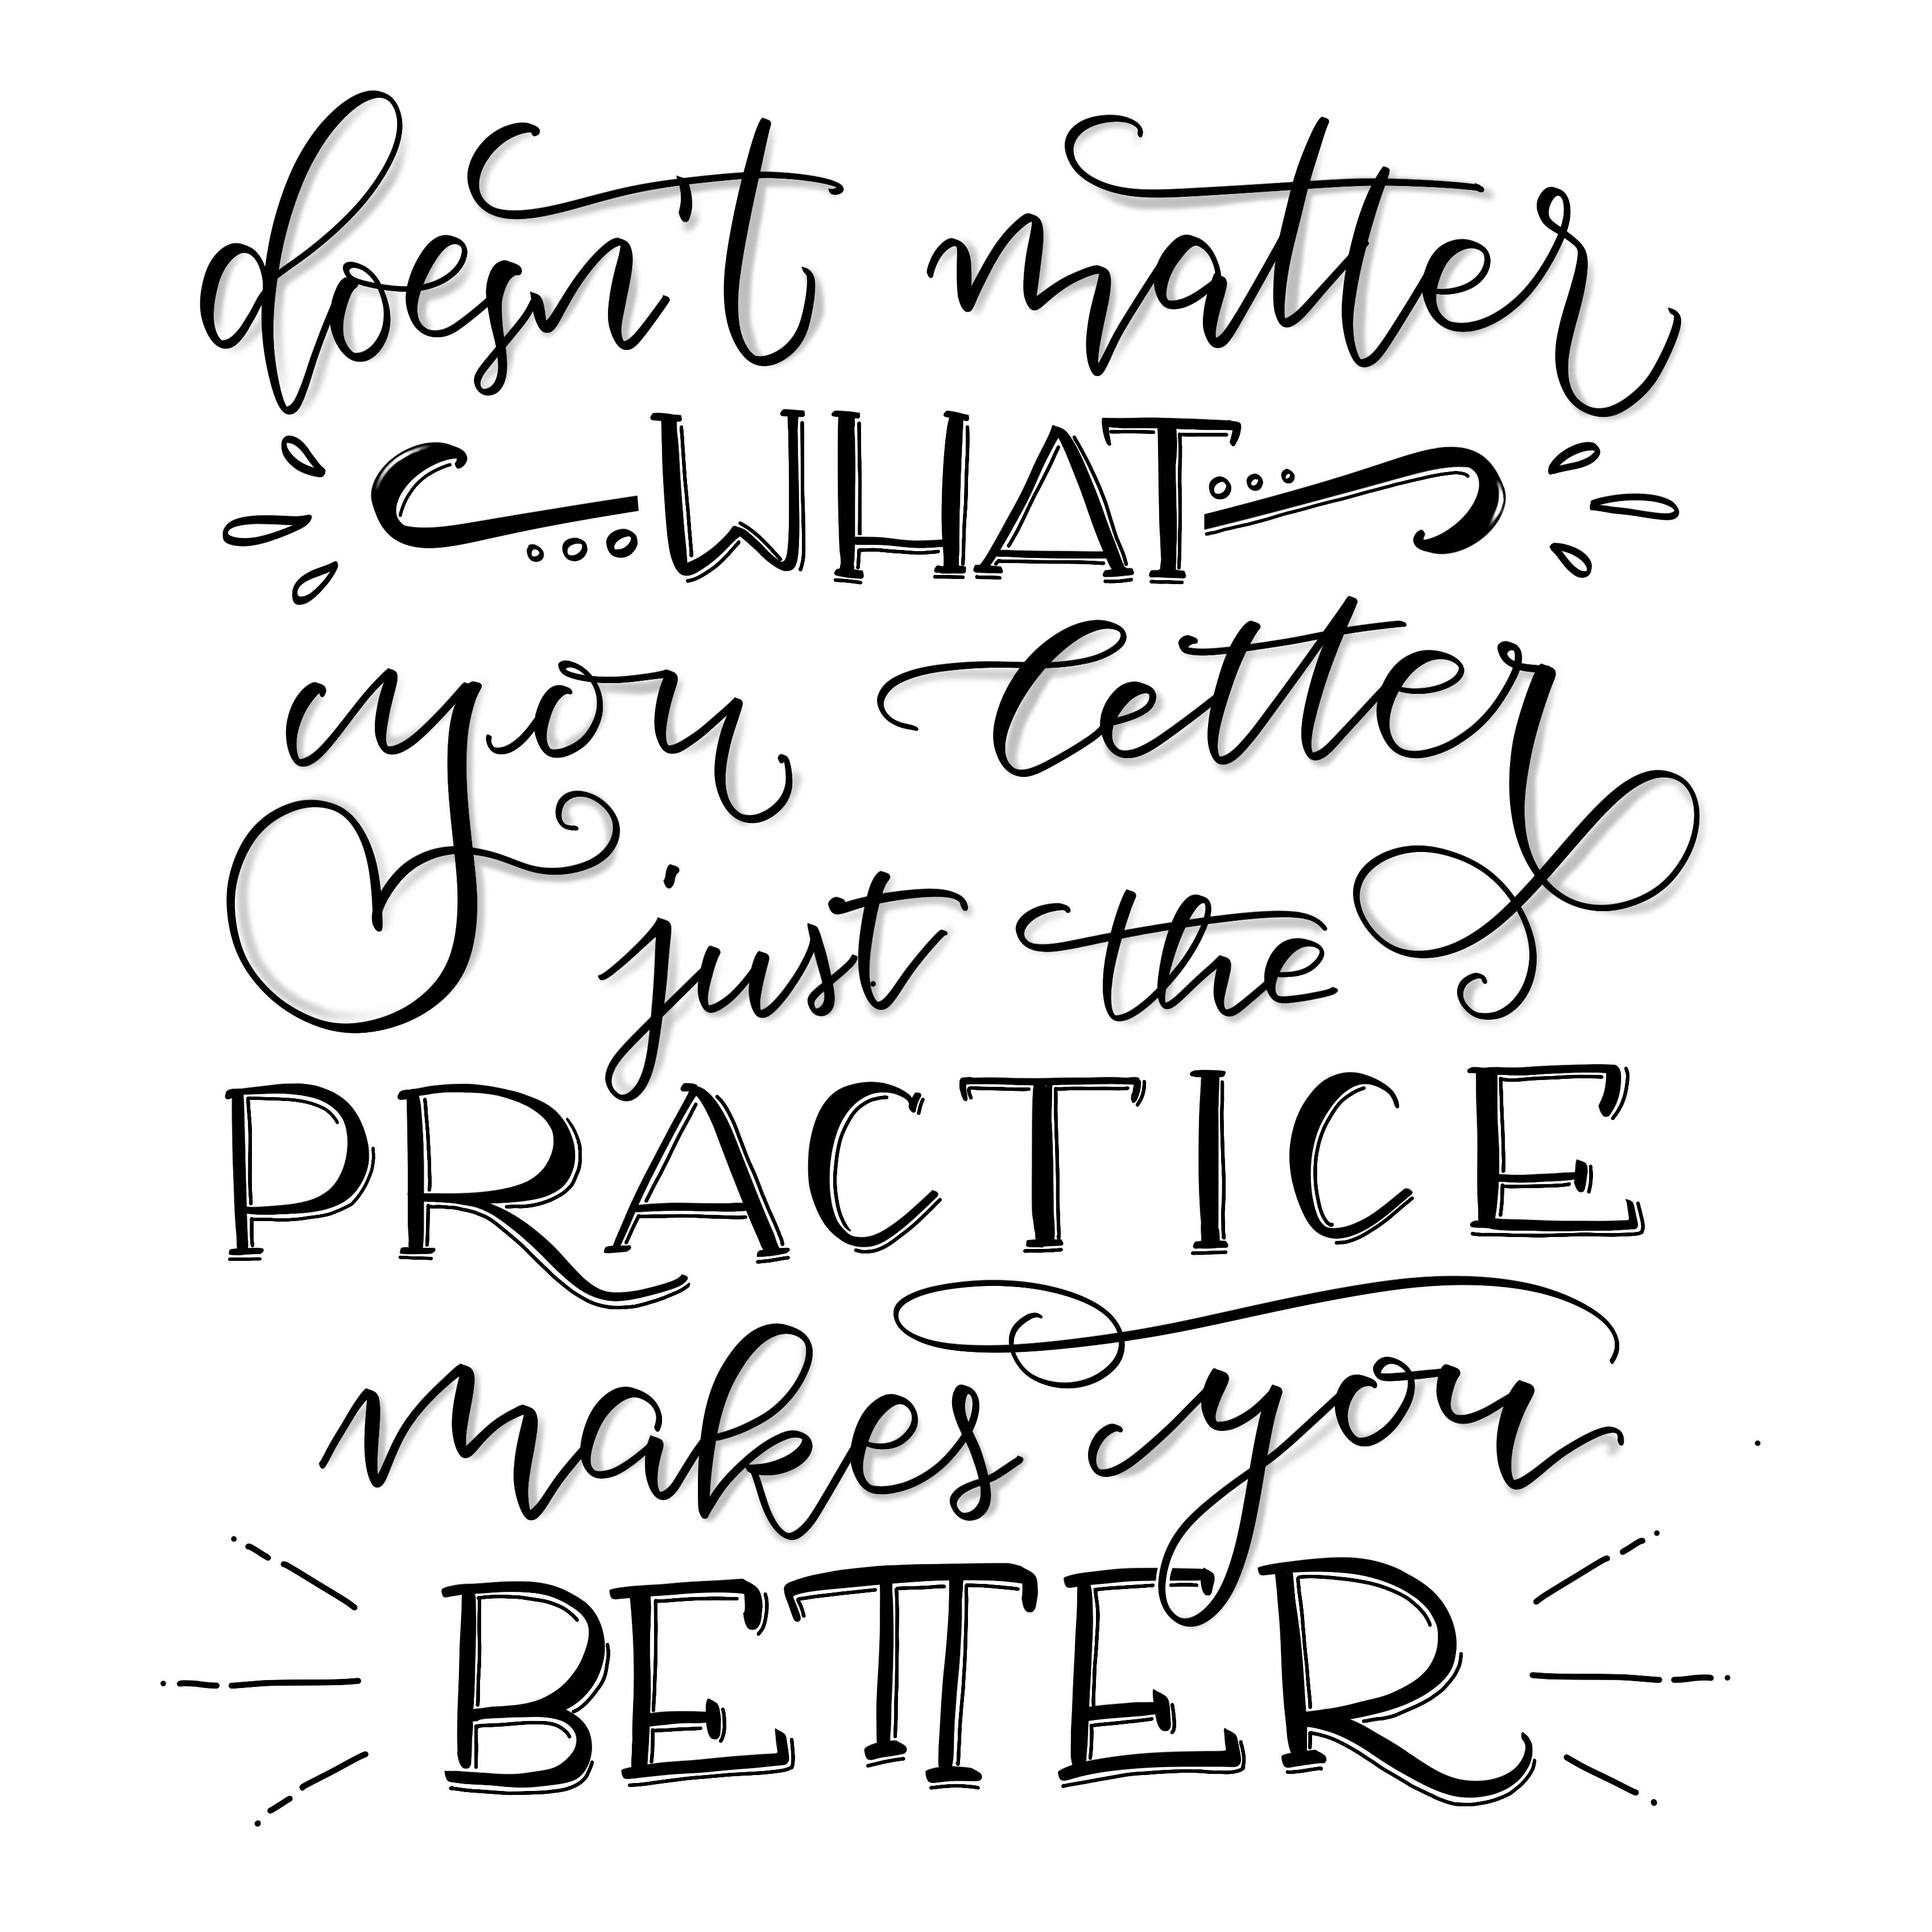 practice makes you better - iPad Brush Lettering